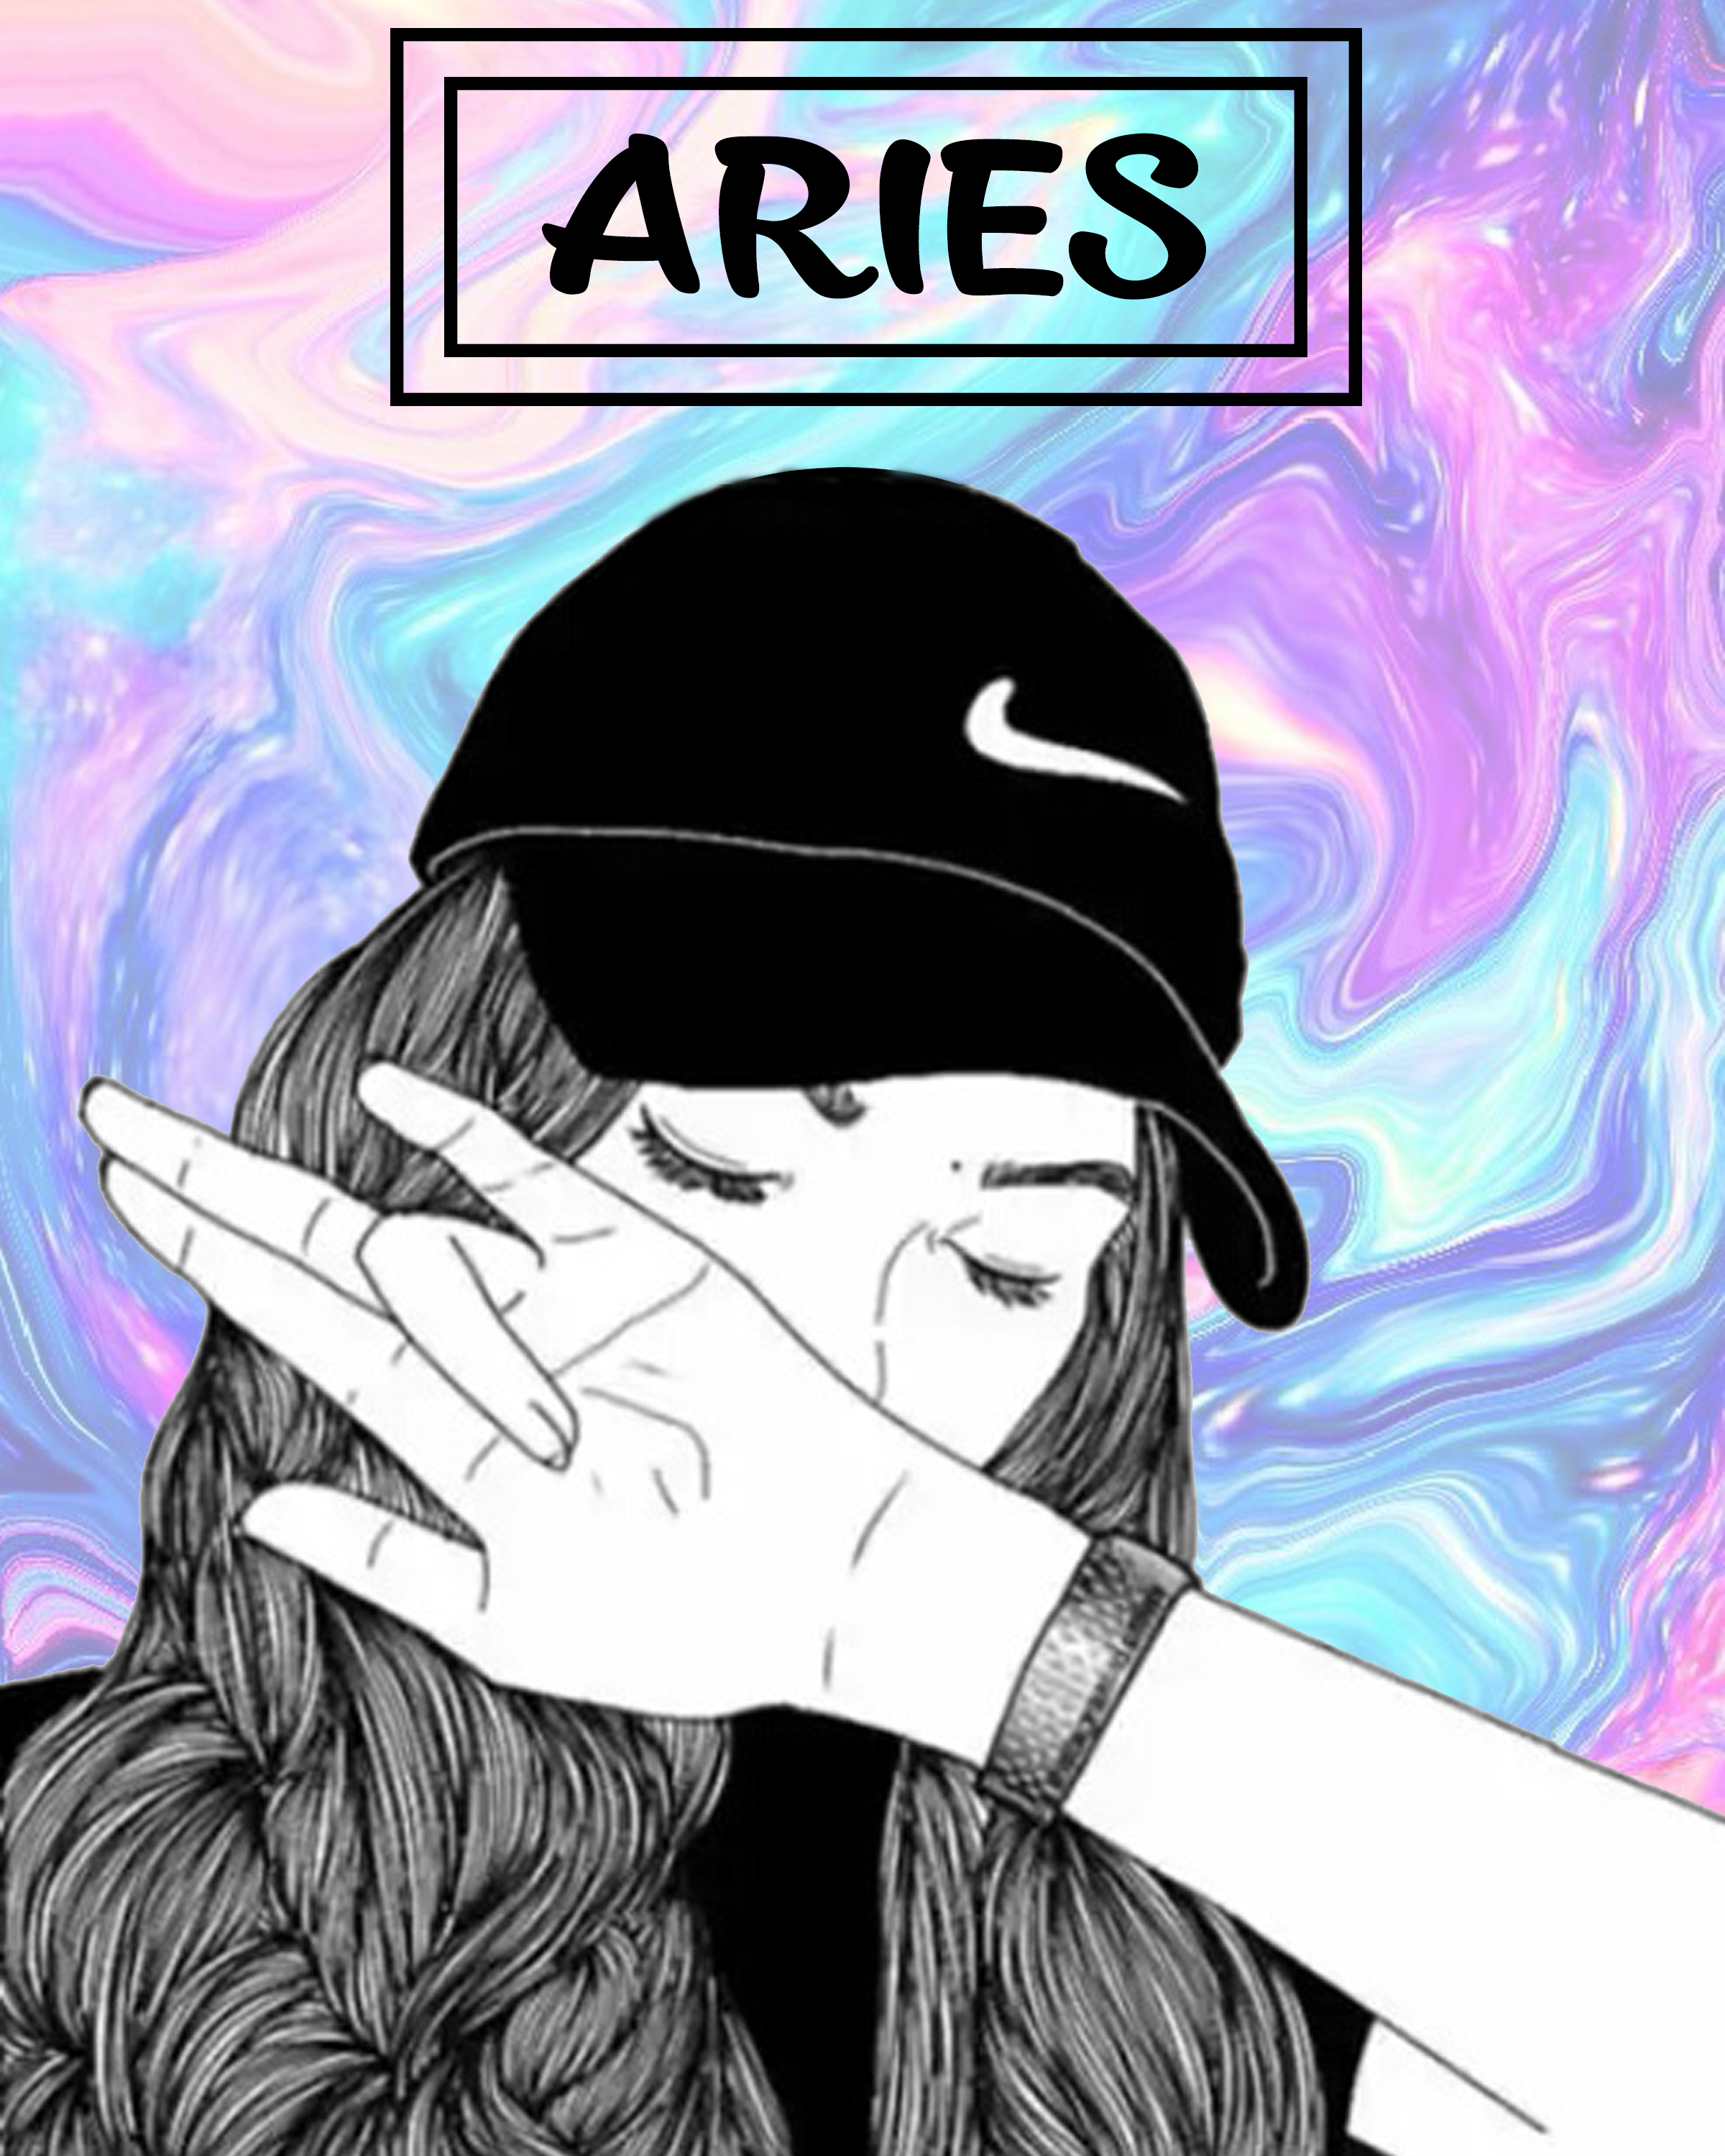 aries most compatible zodiac sign